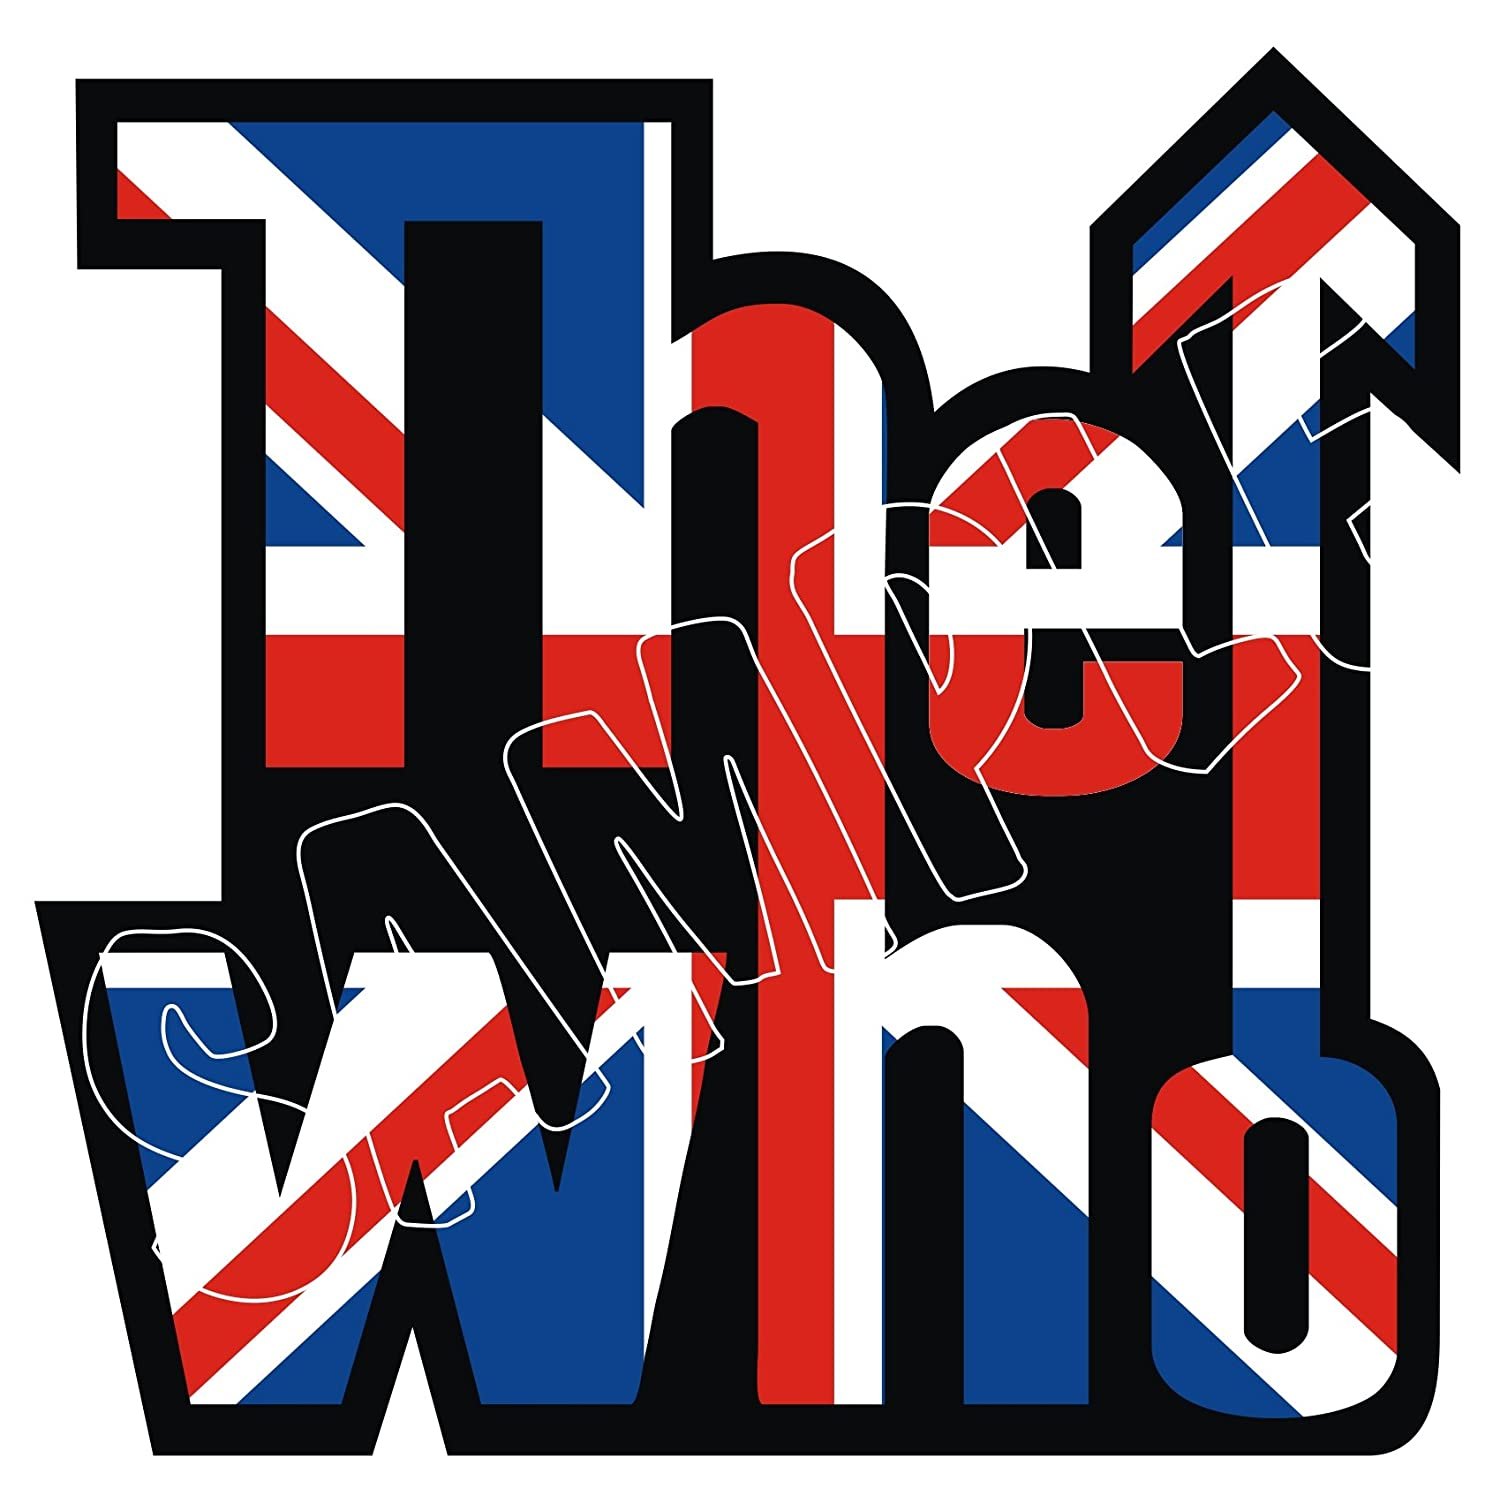 60MM SCOOTER MODS CLASSIC THE WHO LOGO HELMET STICKER DECAL, use on Motorbikes, Scooters, Helmets, Leg Shields. IPoppinshop